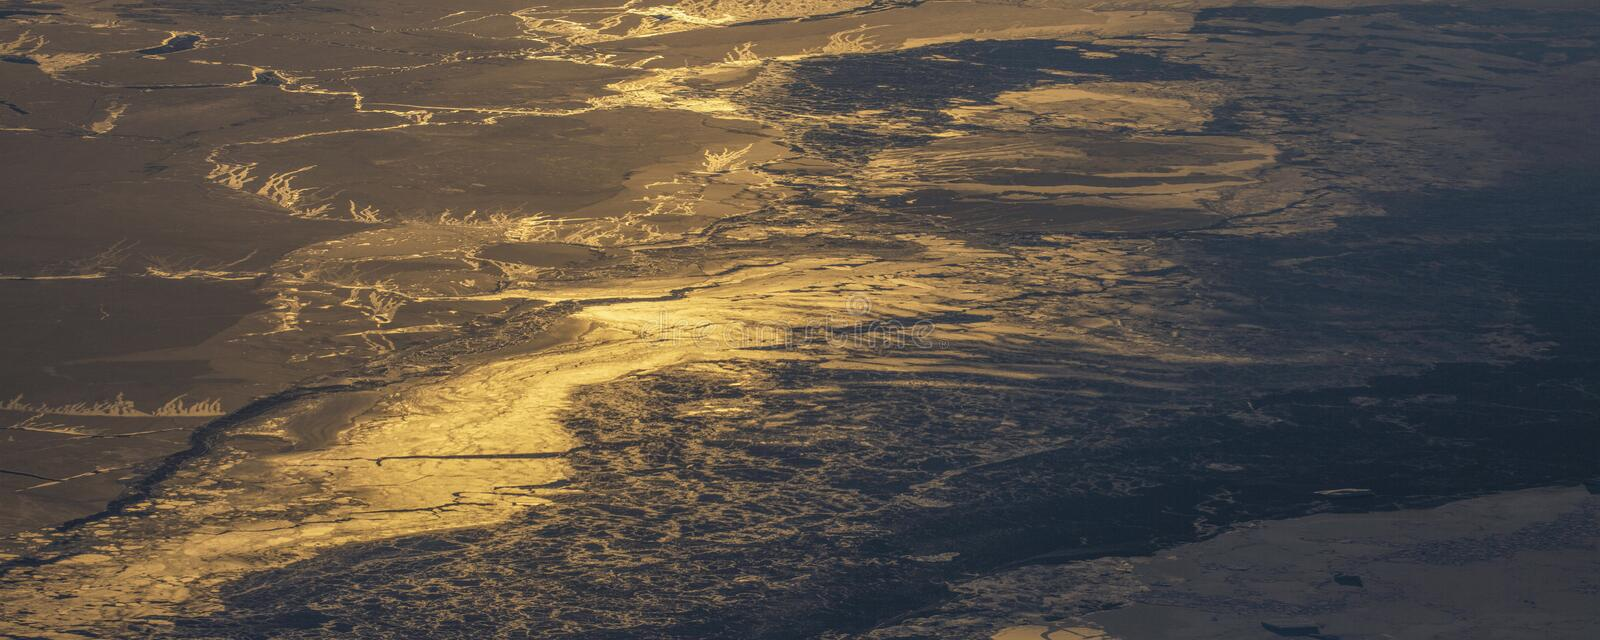 24Take an aerial view of the ice and sunrise over the bering strait.(1). The bering strait is located in the high latitudes, cold weather, many storms stock images